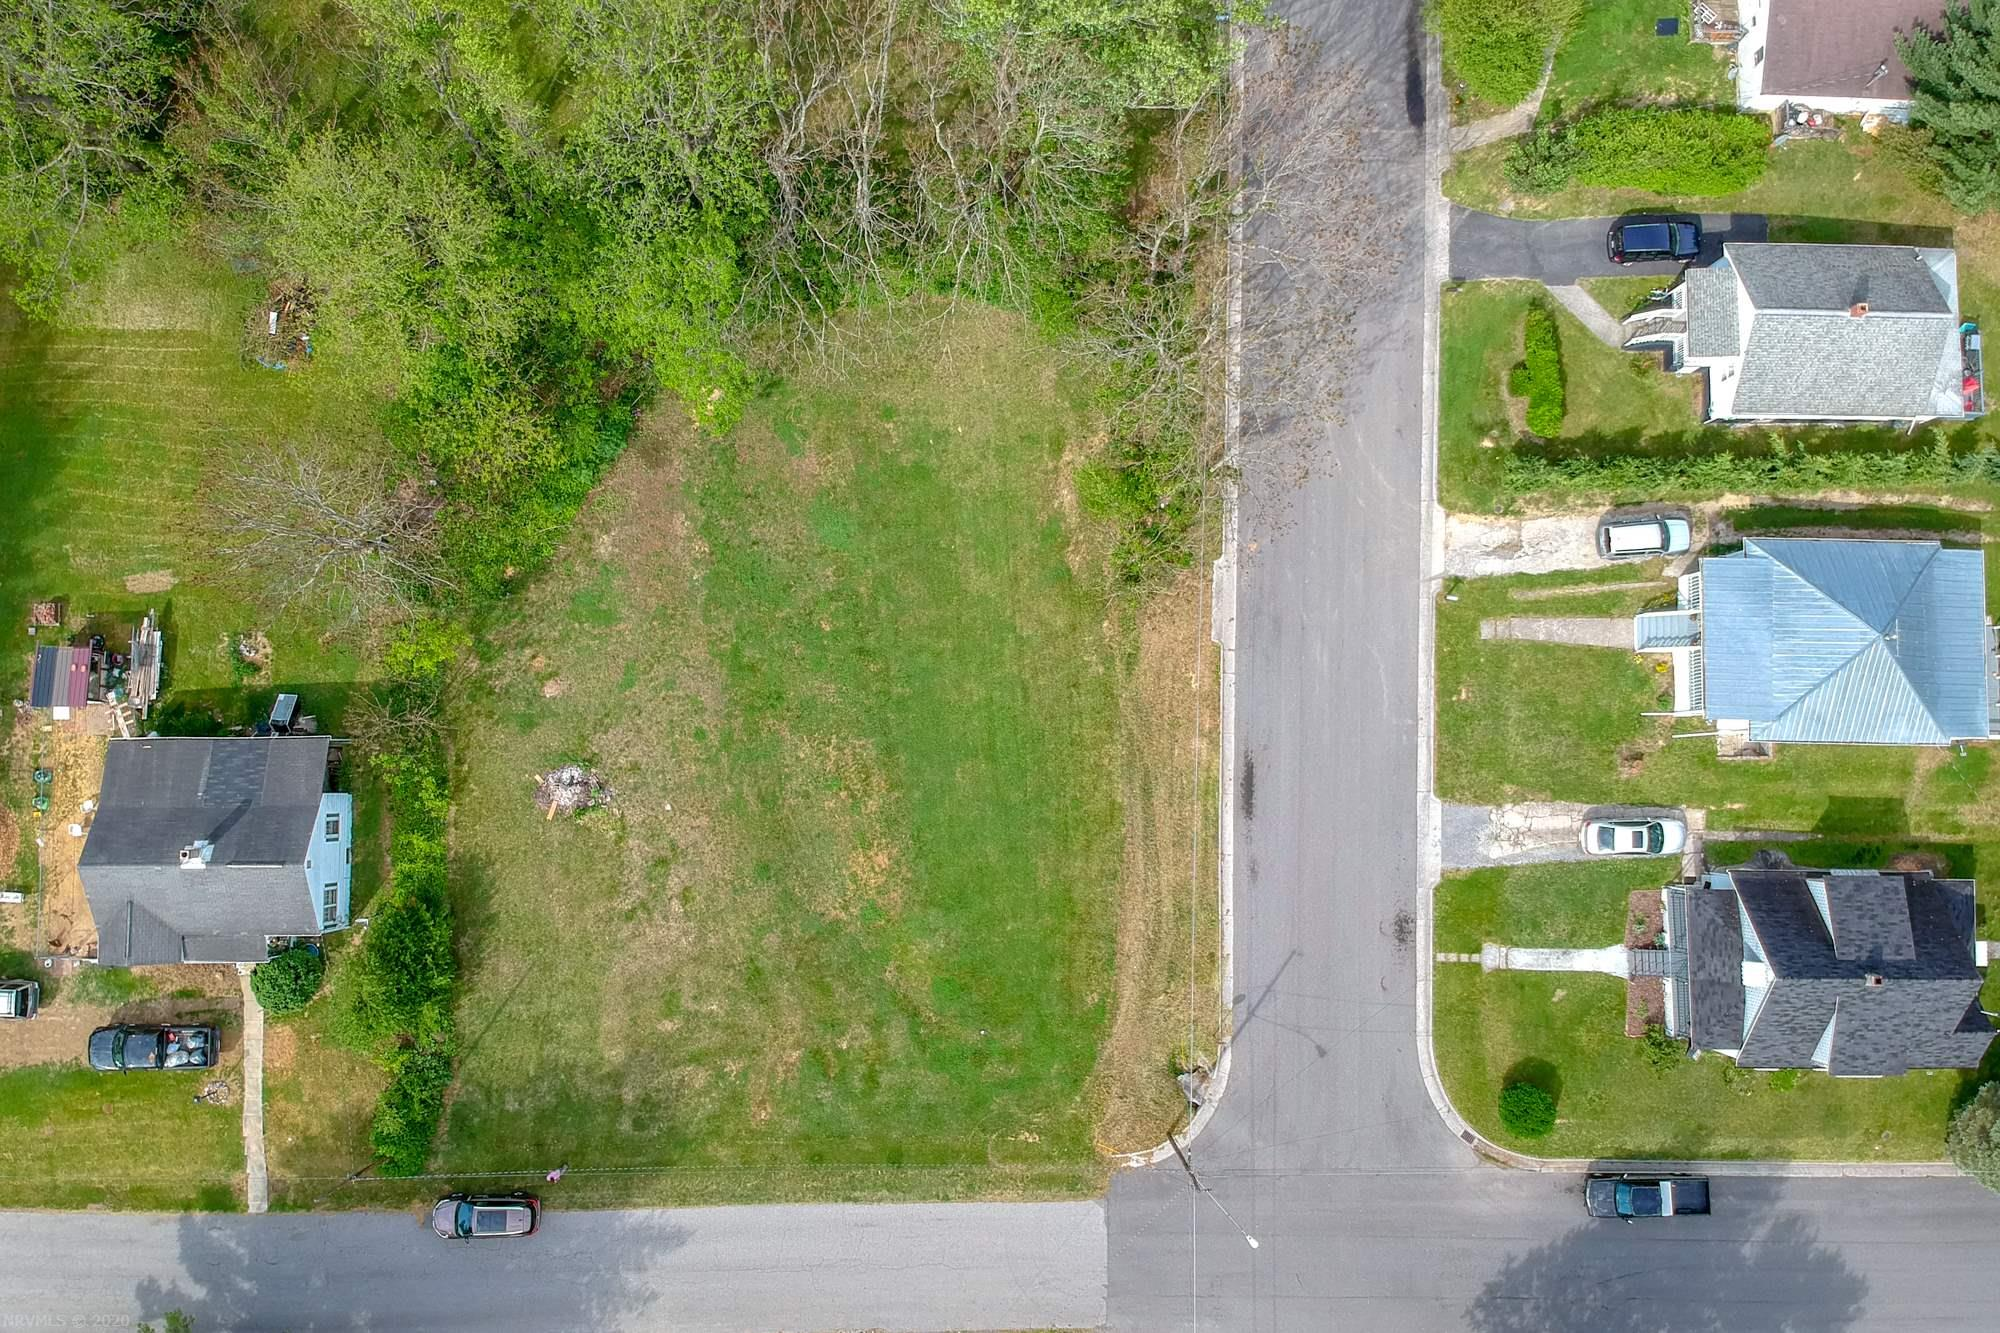 Conveniently located, cleared lot ready for you to build your dream home or a great investment. Zoned R-3 allowing for up to 3 residential units. Easy access to Interstates 77 & 81 with attractions like Big Survey, New River Trail, National Parks, campgrounds, Blue Ridge Parkway, motorcycle riding and everything the beautiful Blue Ridge Mountains have to offer! Additionally, this location has all the benefits of living in town...close to schools, shopping, restaurants, entertainment & medical care... in a quiet neighborhood. So many reasons to take a close look at this property. Town water and sewer are available.